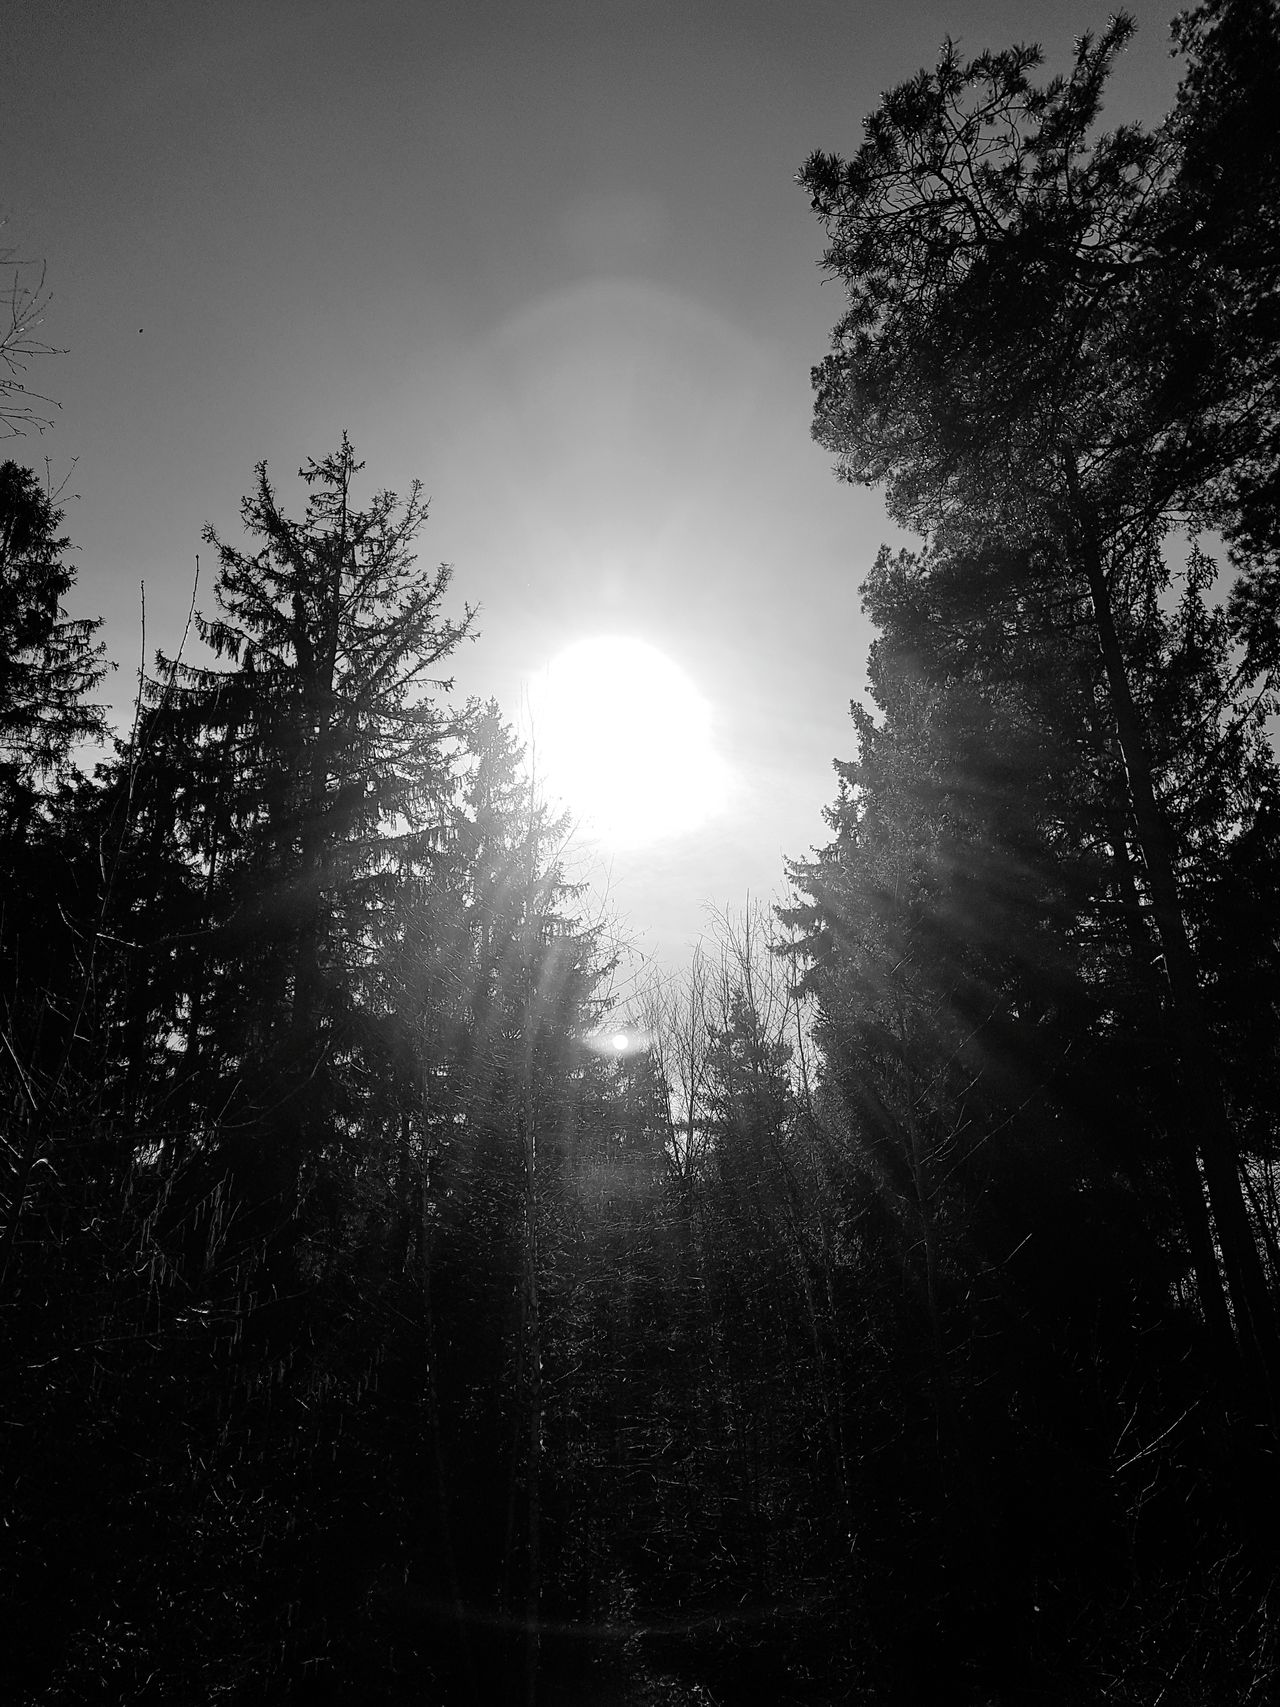 Tree Nature Sky Sunlight Beauty In Nature No People Sunset Outdoors Day Blackandwhite Black And White Black & White Black And White Photography Black And White Sun